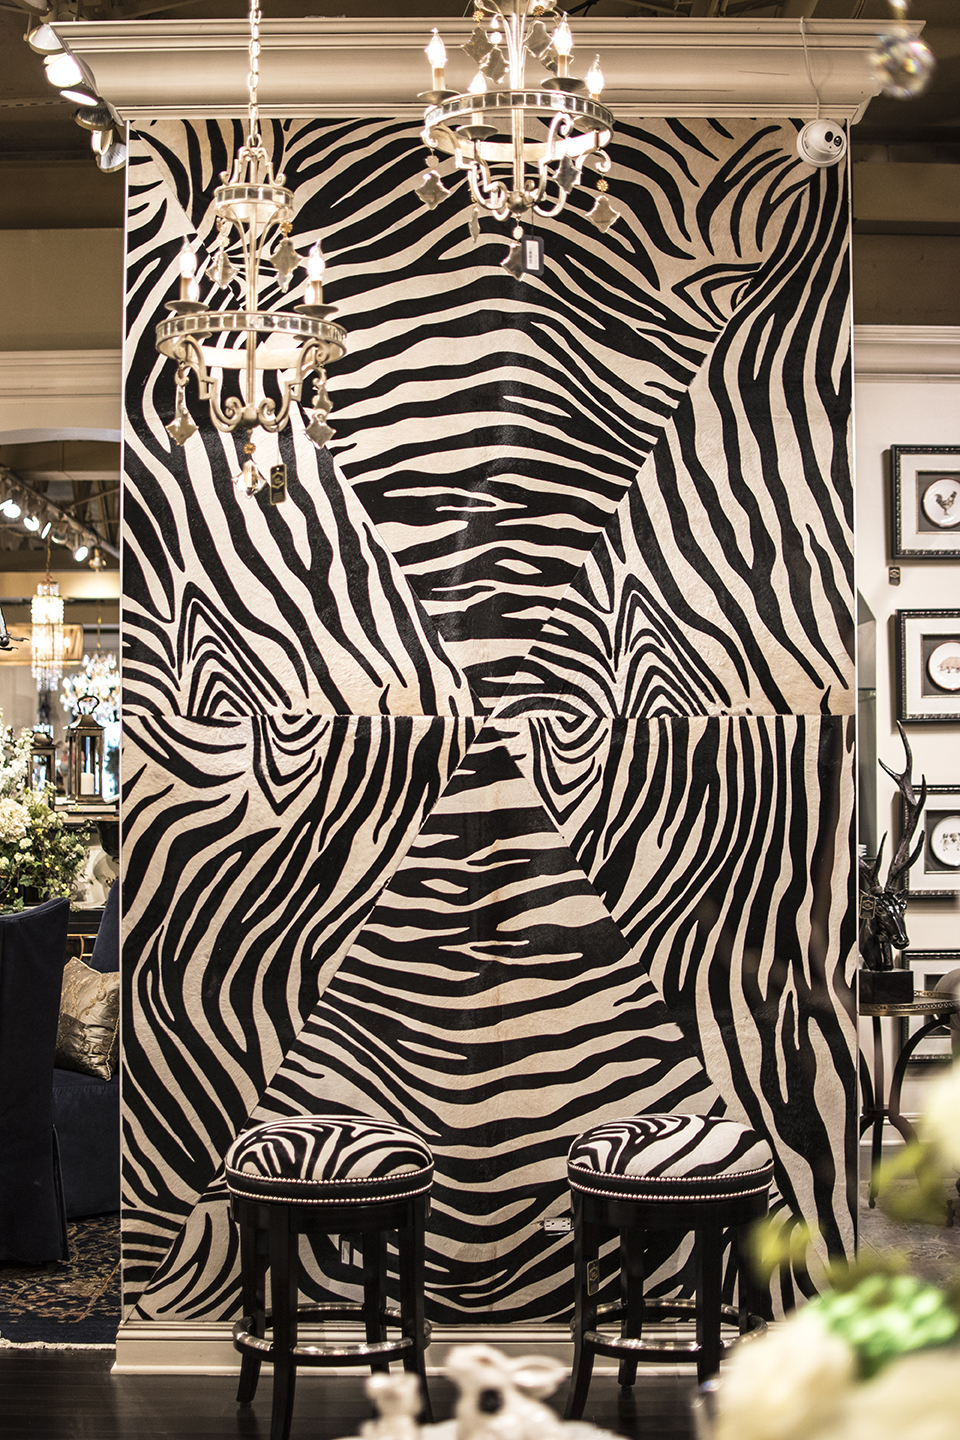 Keleen Leathers Zebra Posh Luxury Leather Wall for KLAD